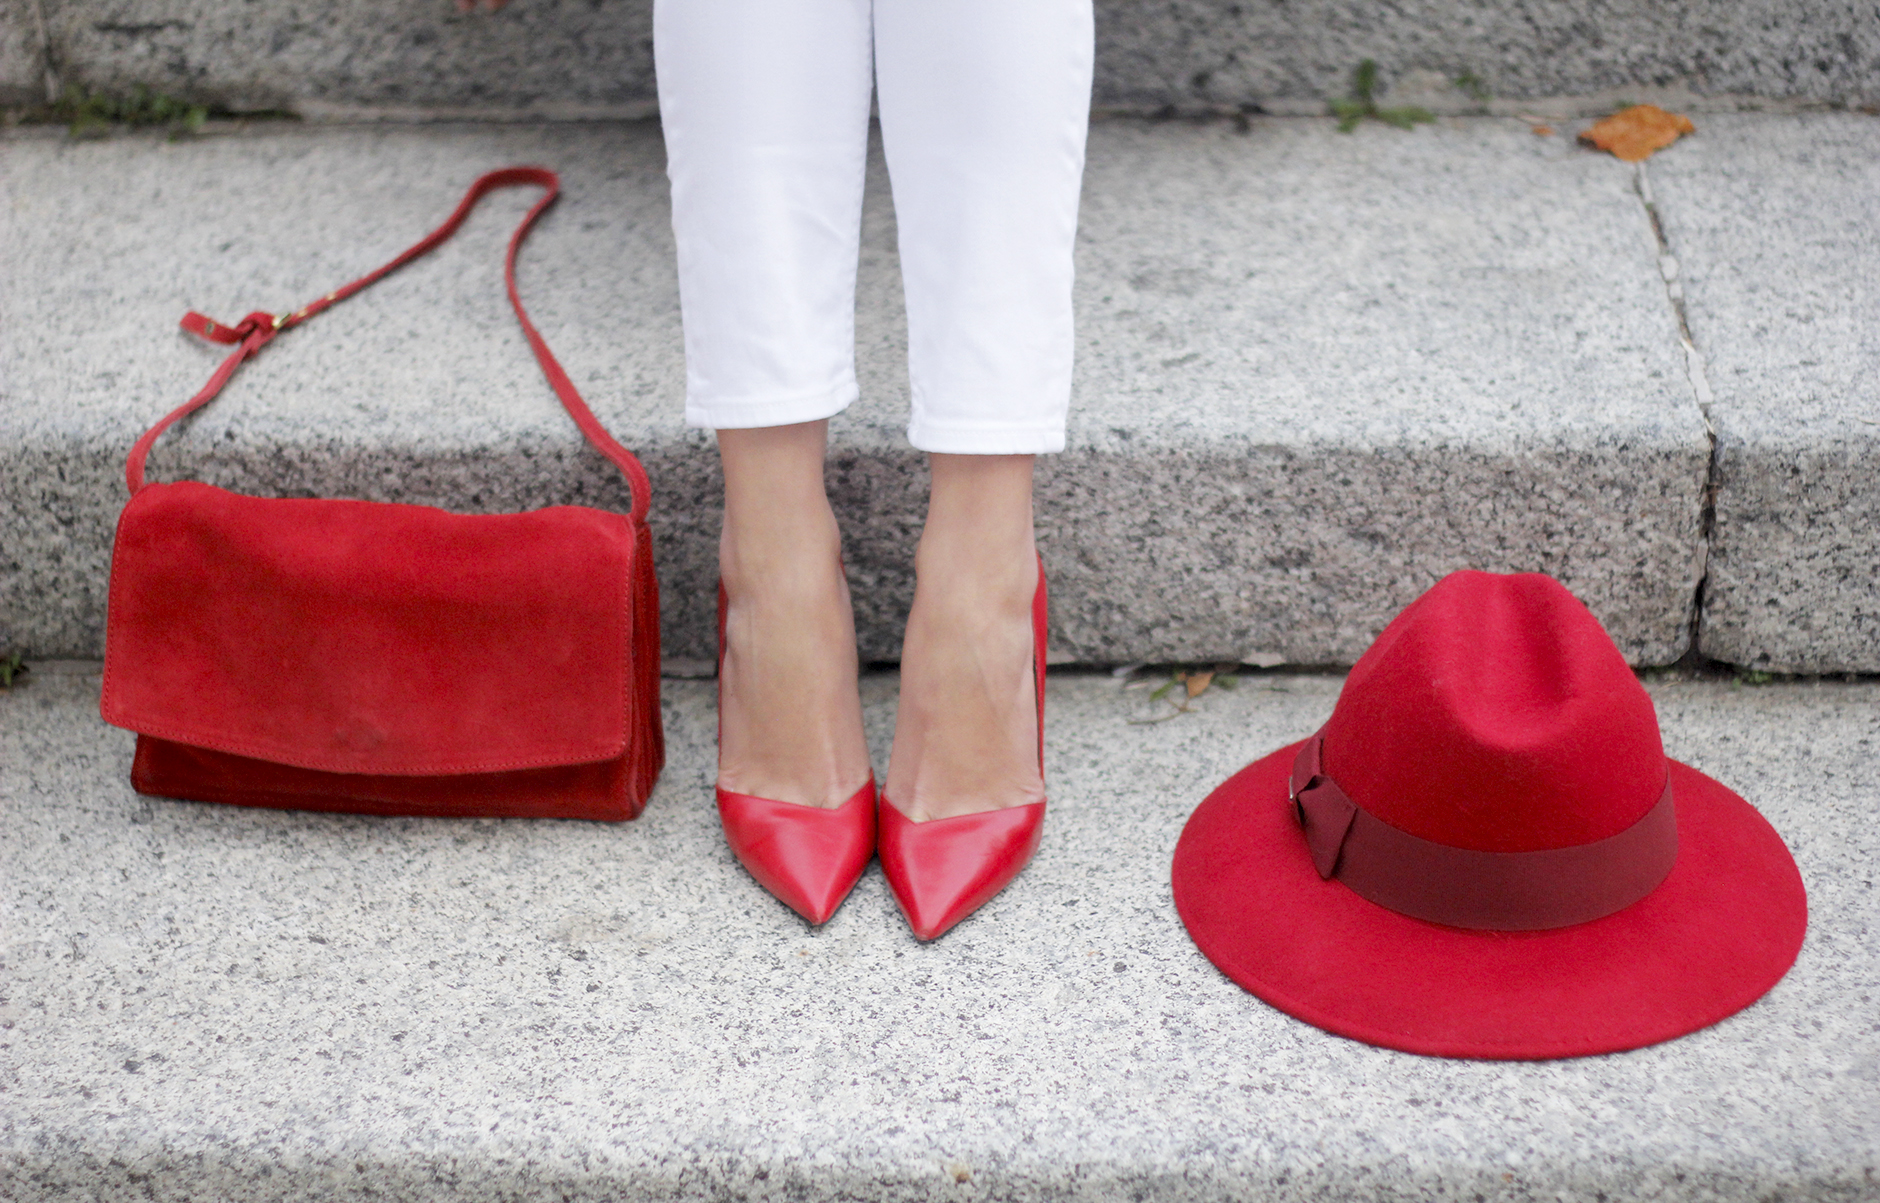 Turtleneck Sweater white jeans red heels red hat uterqüe outfit19